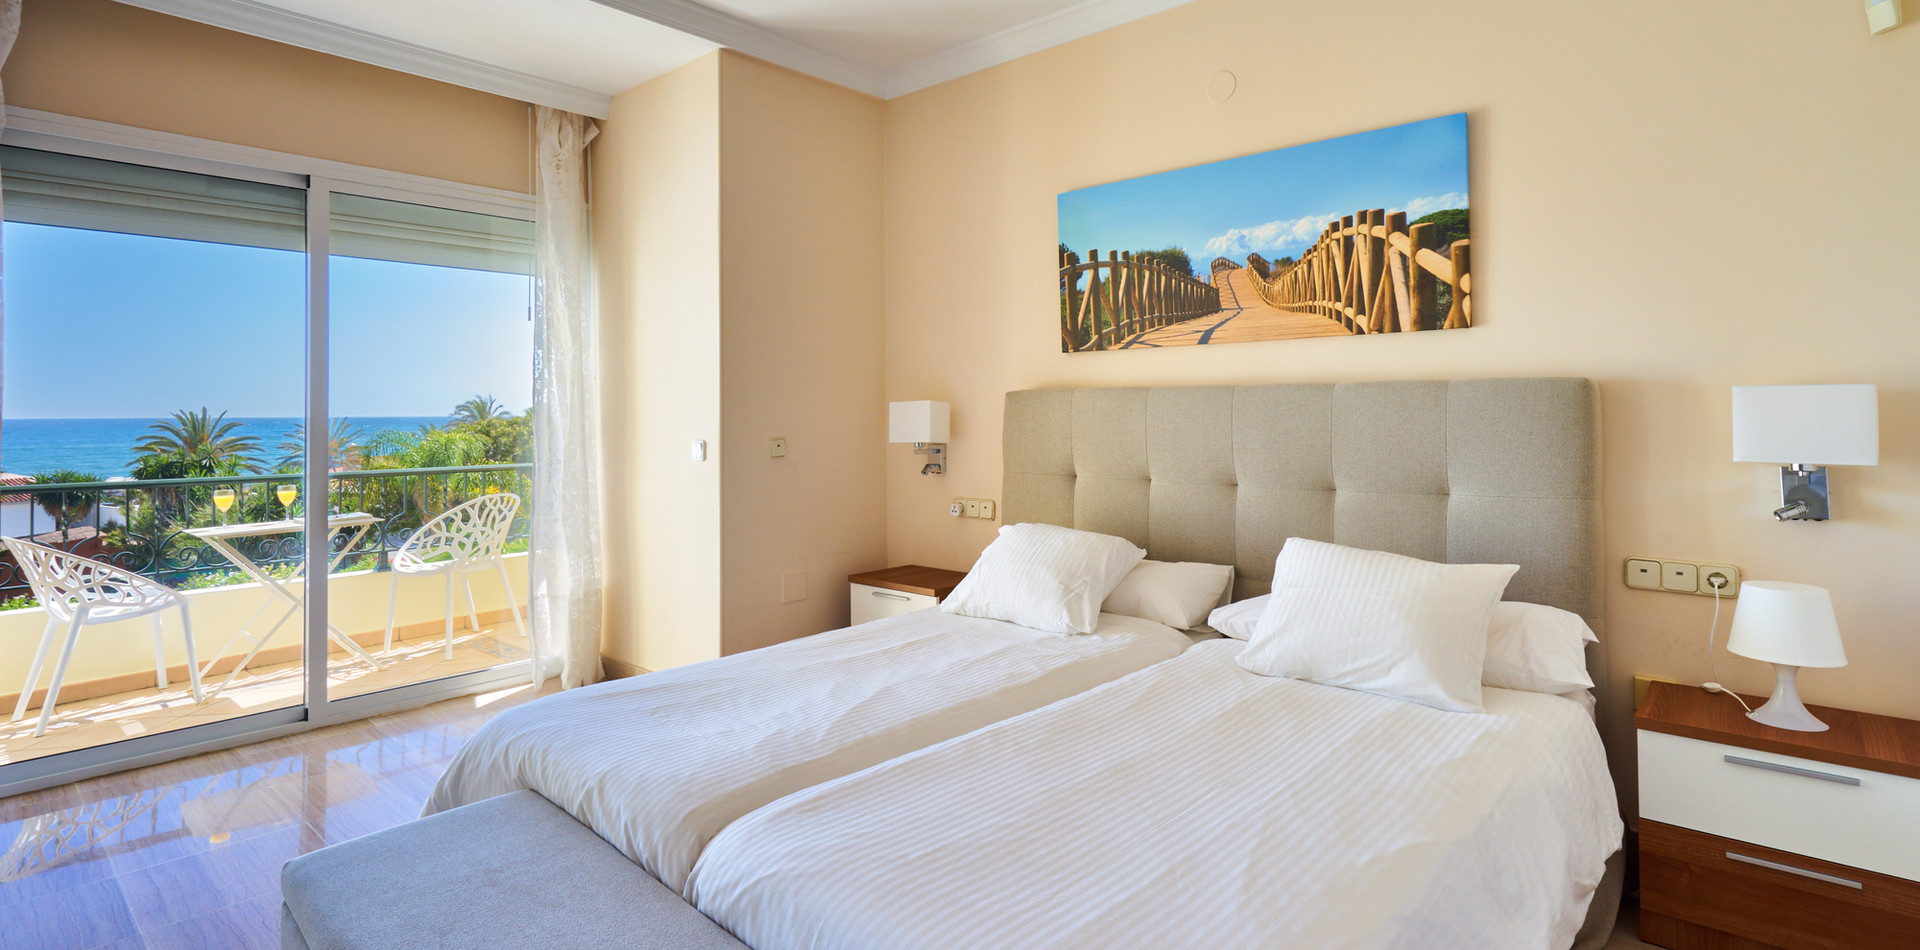 three bedroom apartment marbella.jpg